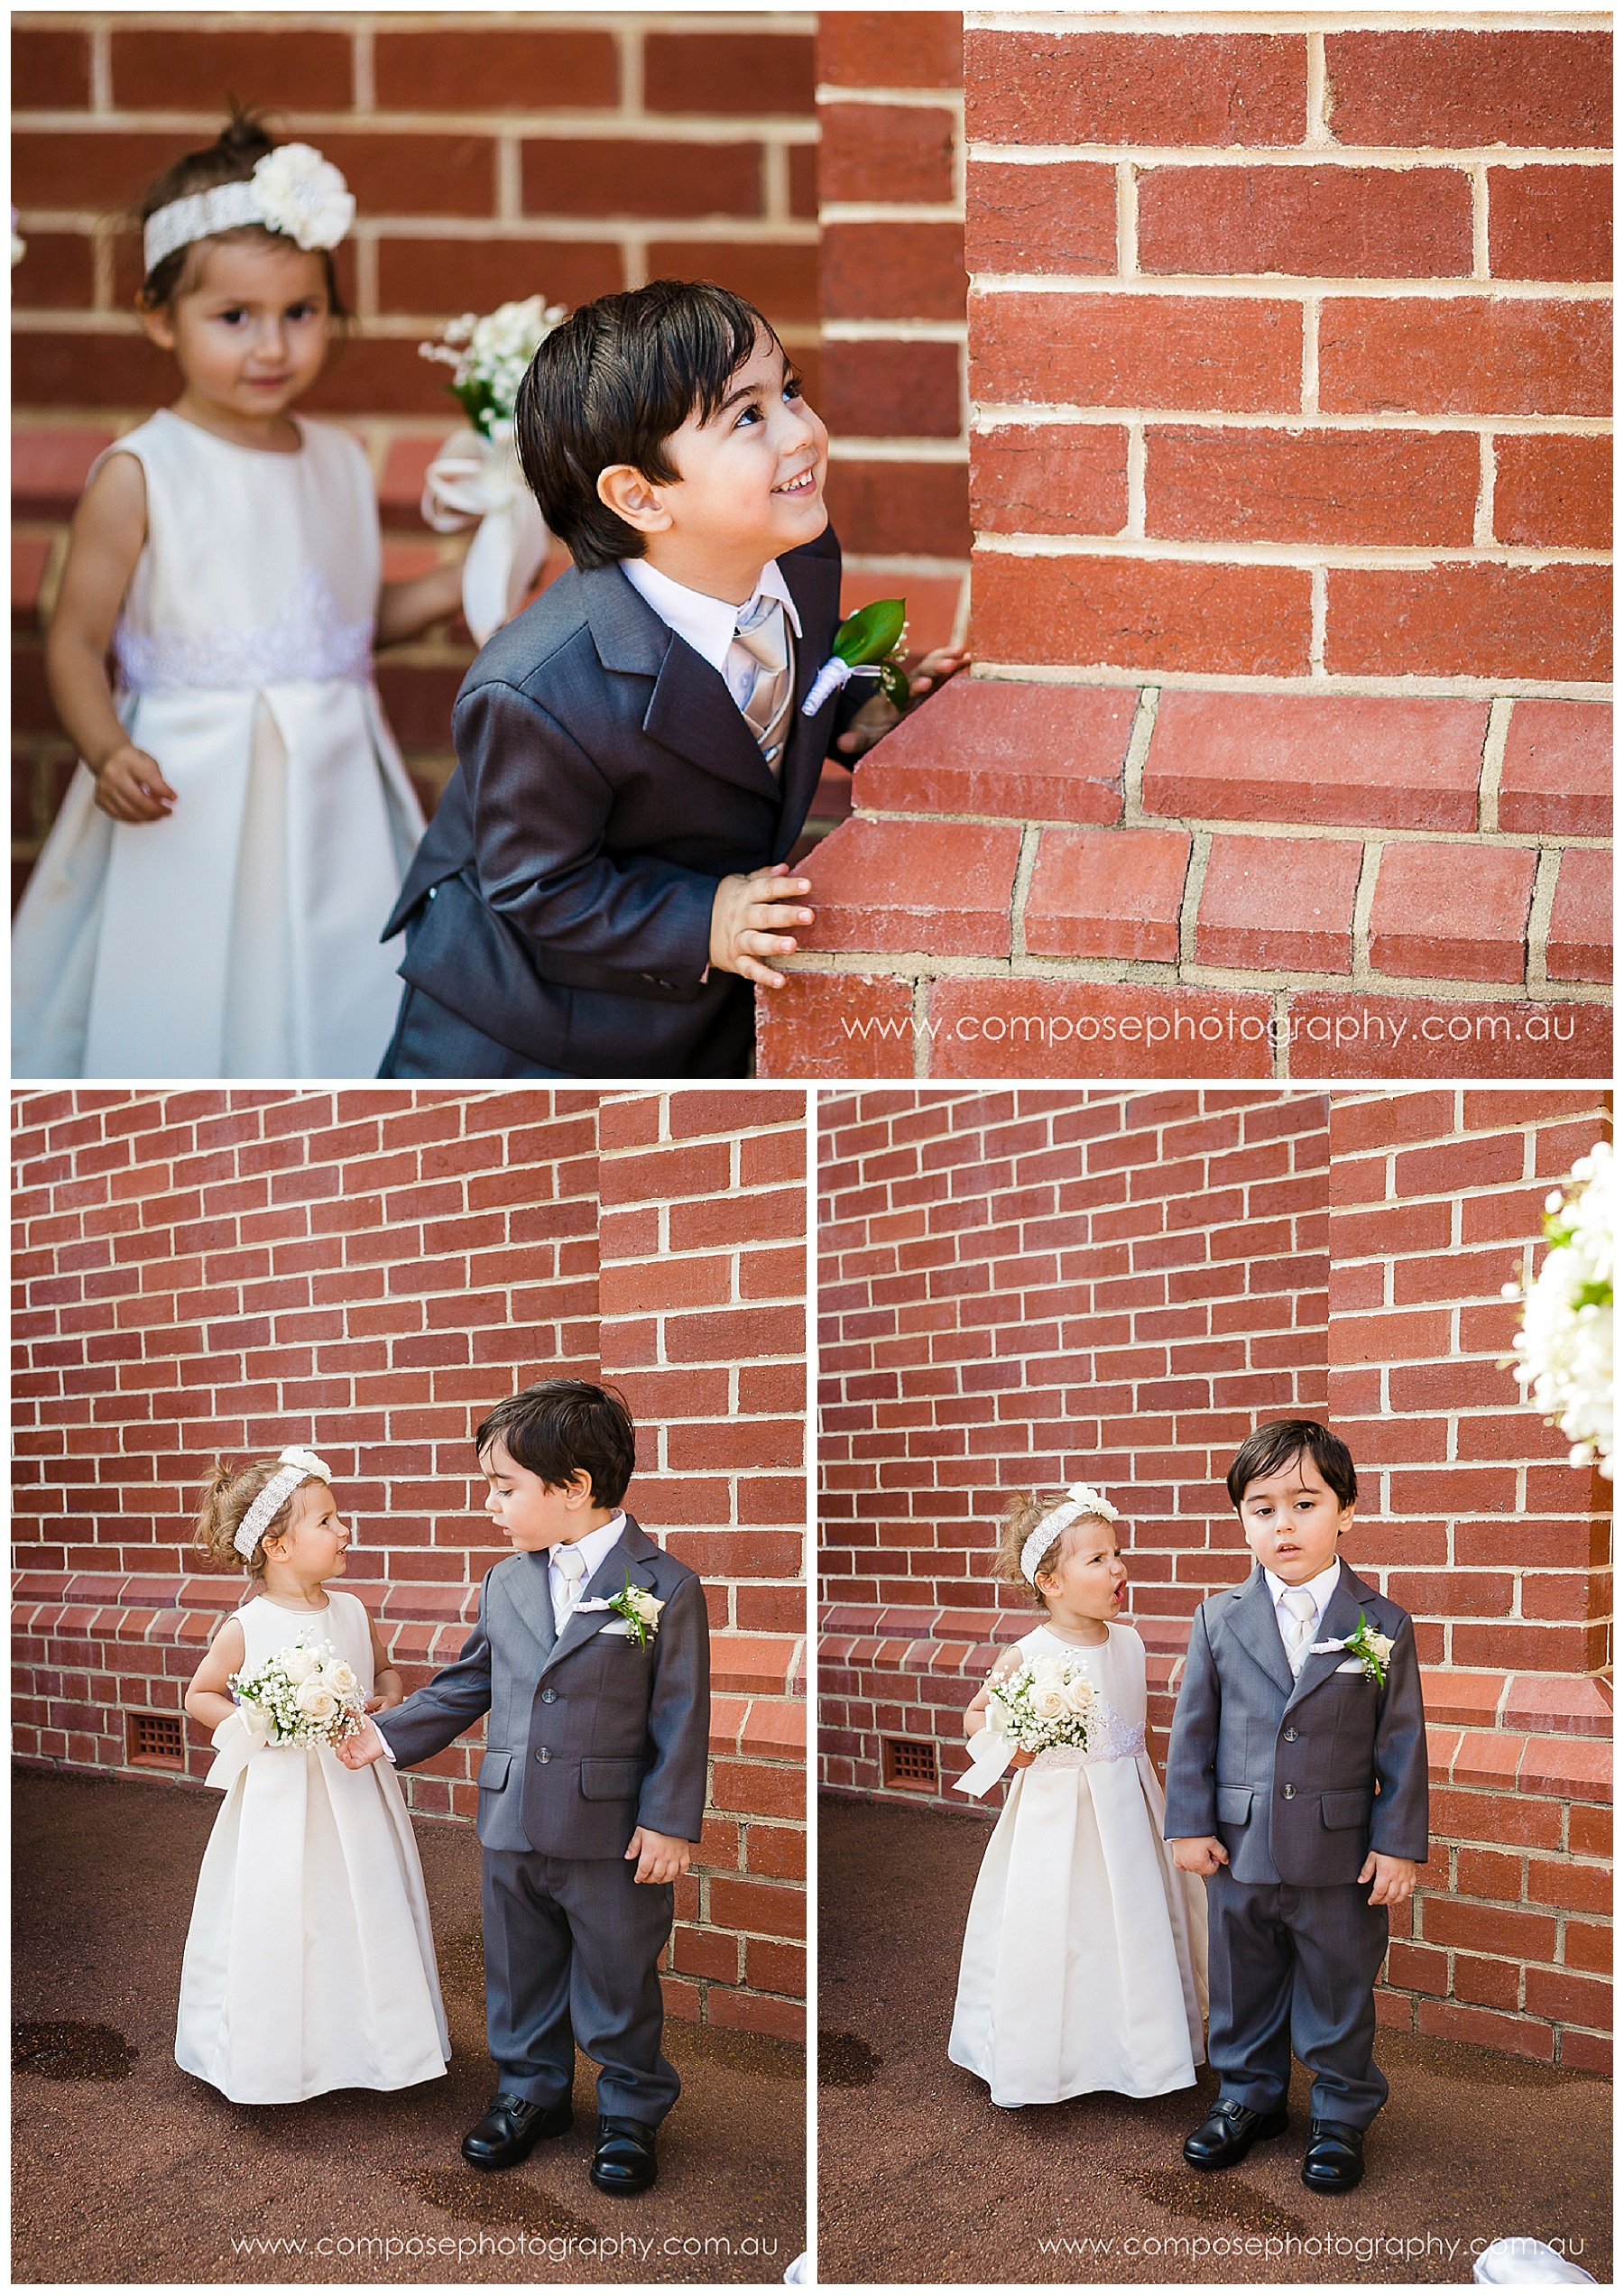 Kids at weddings are always entertaining, today we feature wedding photography of some of our favourite pageboys and flowergirls so far this year.